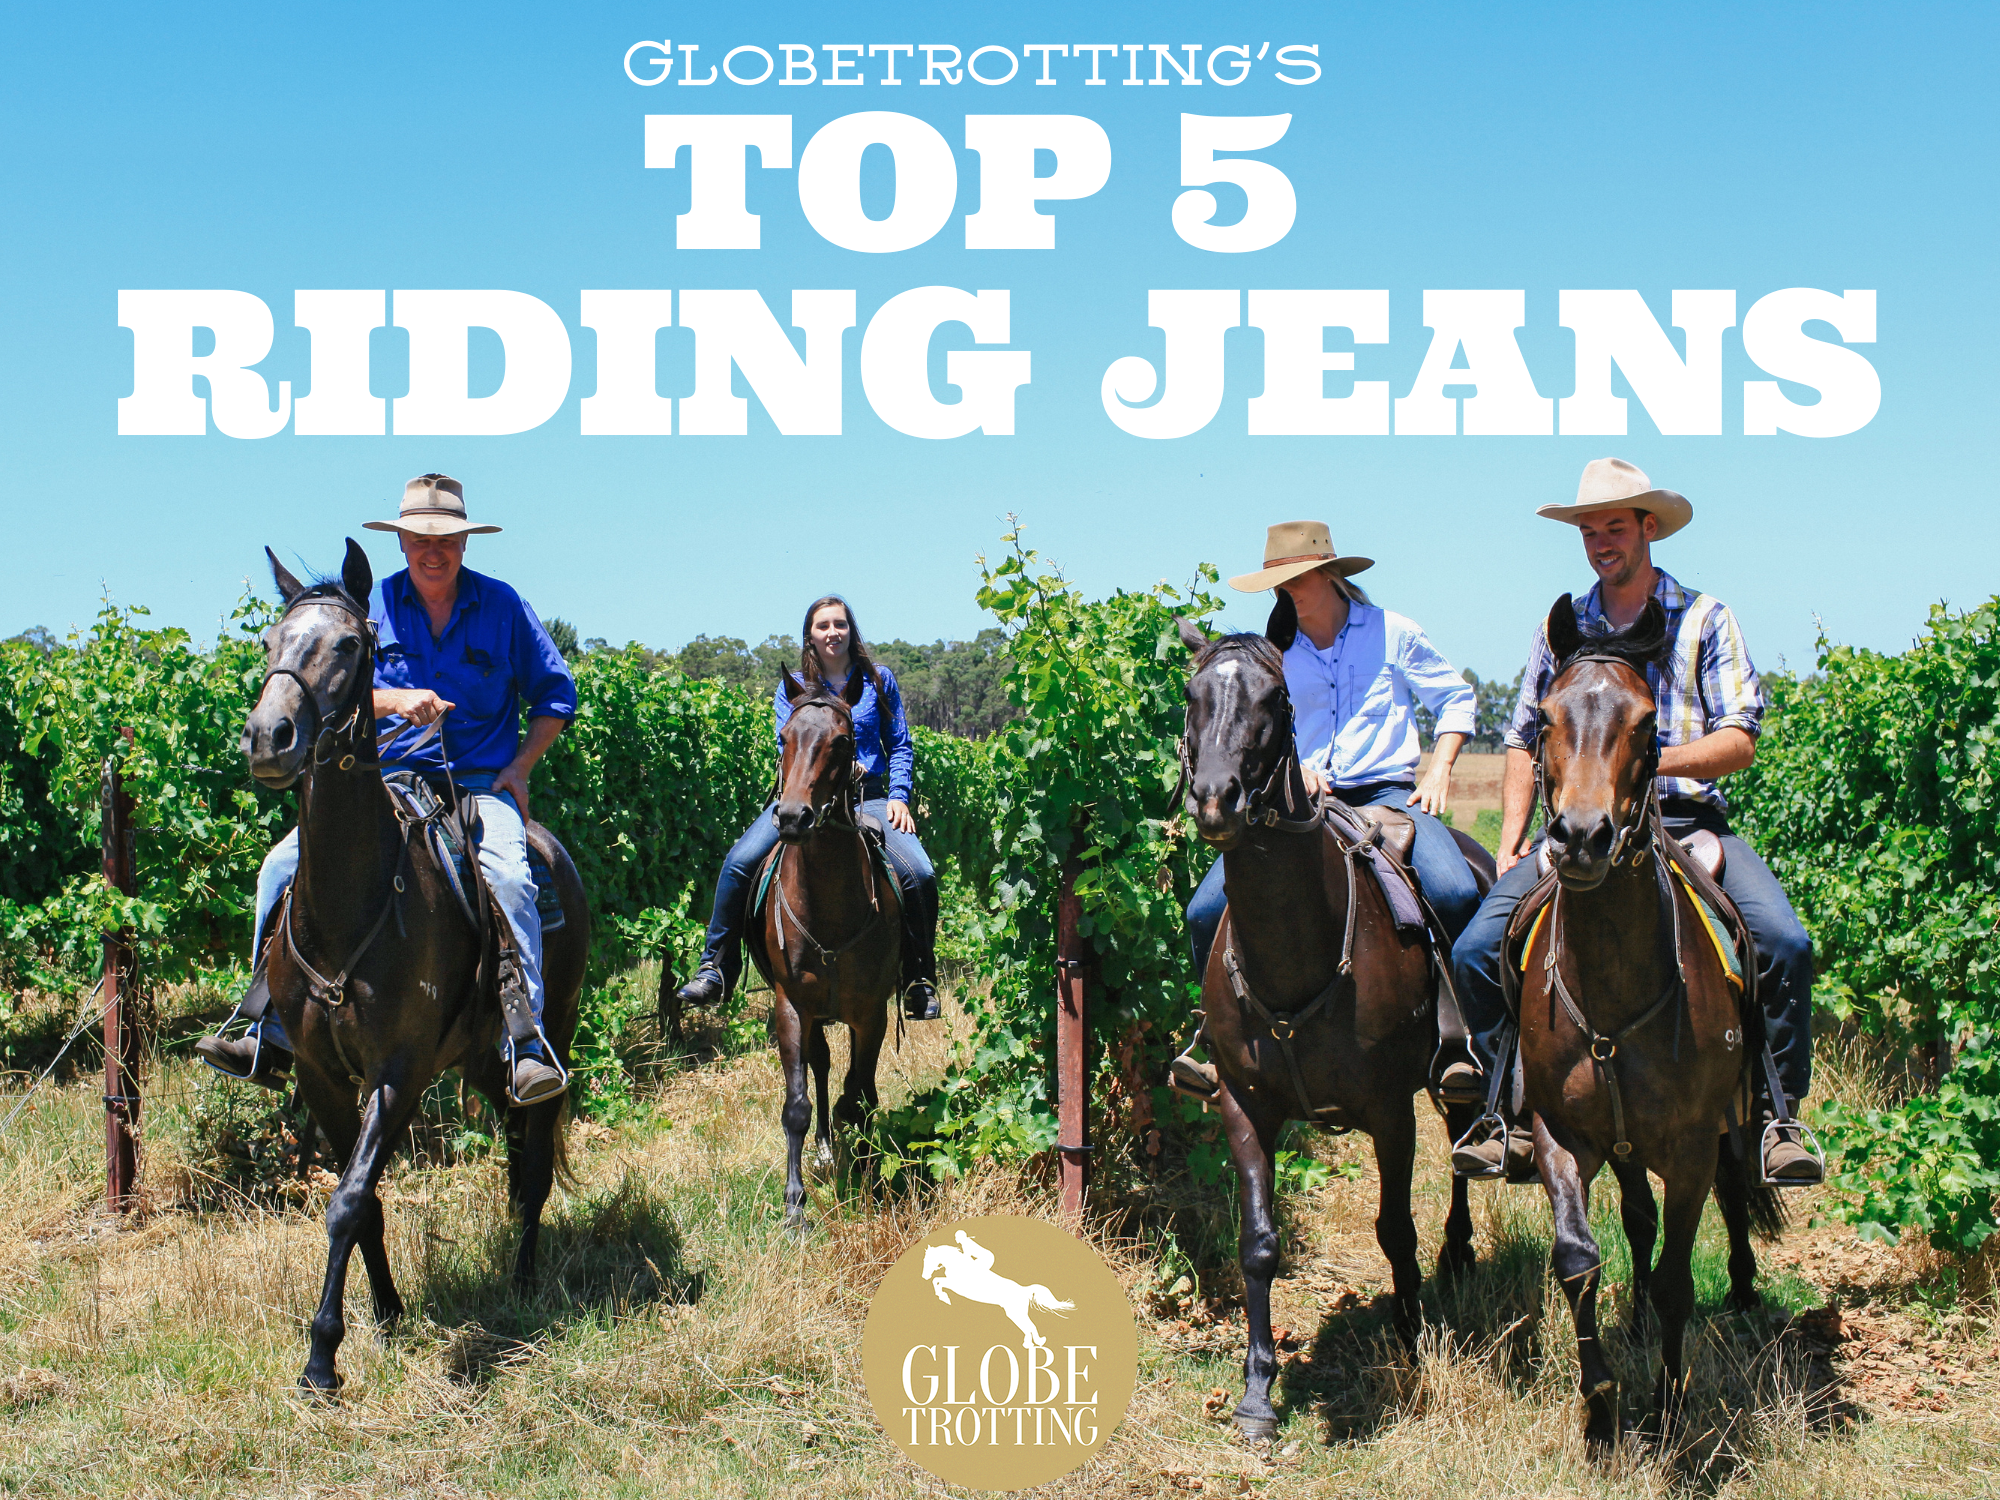 Top 5 riding jeans - Globetrotting horse riding holidays